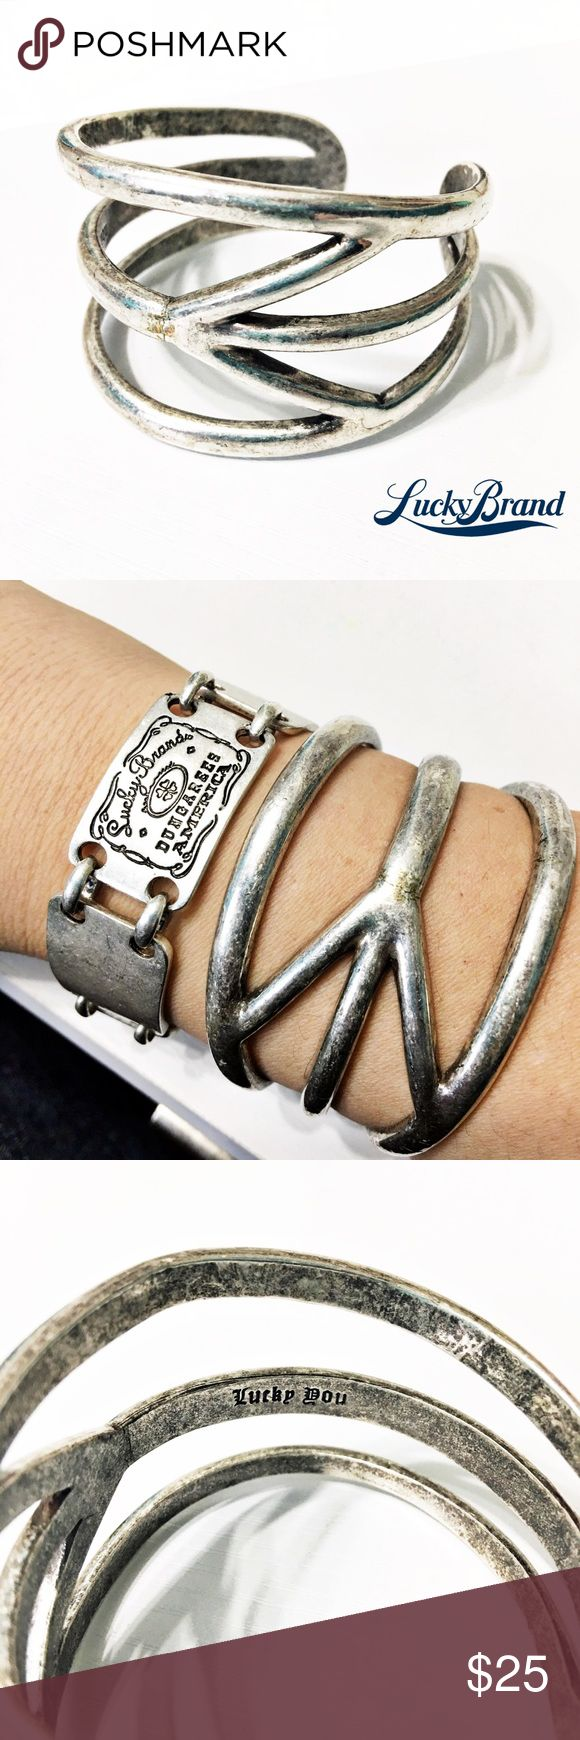 Lucky Brand Silver Boho Peace Cuff Bracelet This cuff bracelet is so stylish! From Lucky Brand and in like-new condition. Questions? Please ask! Sorry, no trades. Bundle for a discount! Lucky Brand Jewelry Bracelets